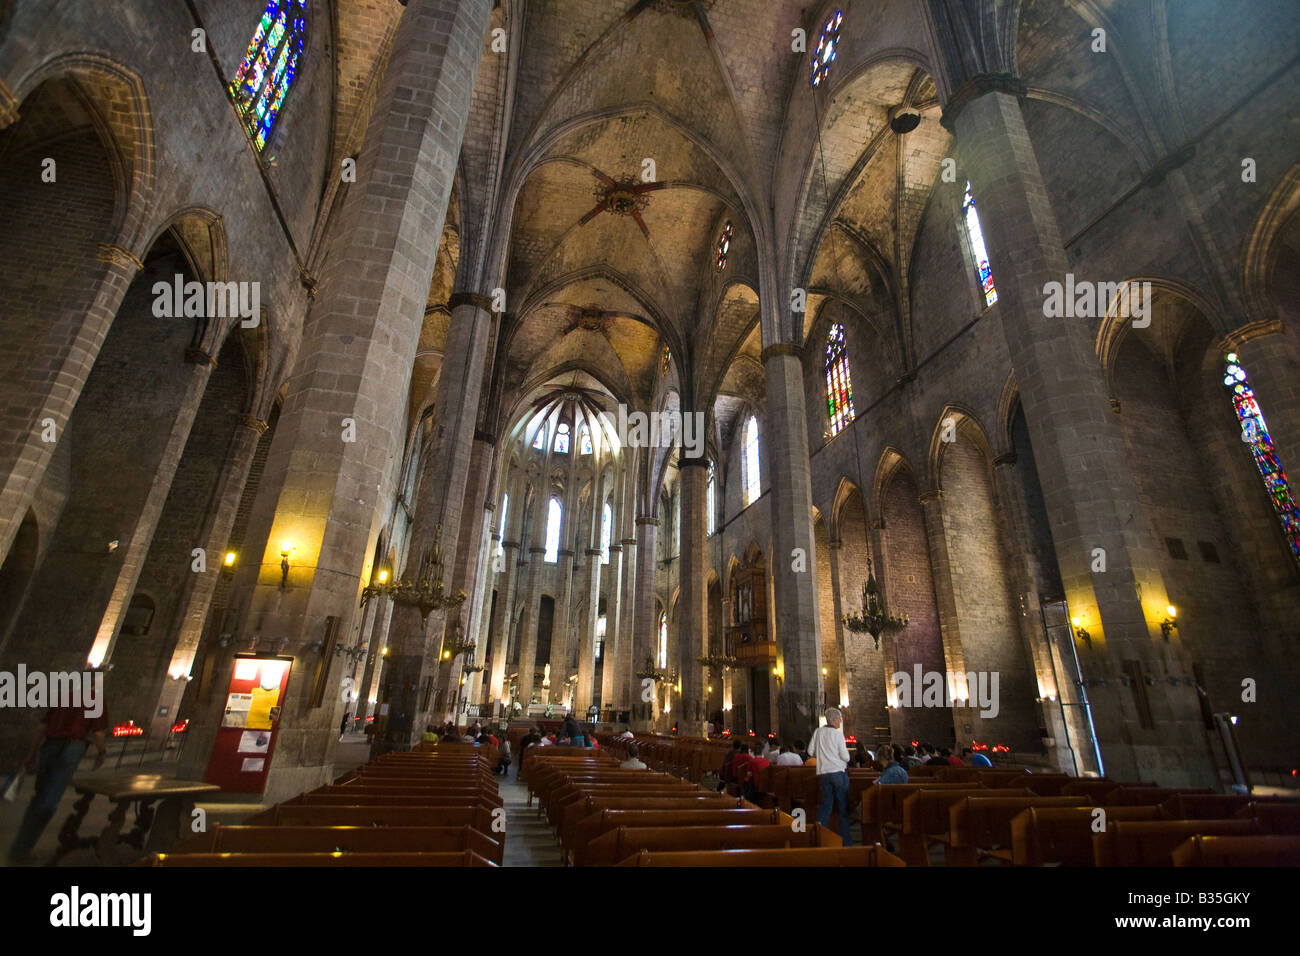 SPAIN Barcelona Visitors To Catalan Gothic Style Architecture Interior Of Church Santa Maria Del Mar